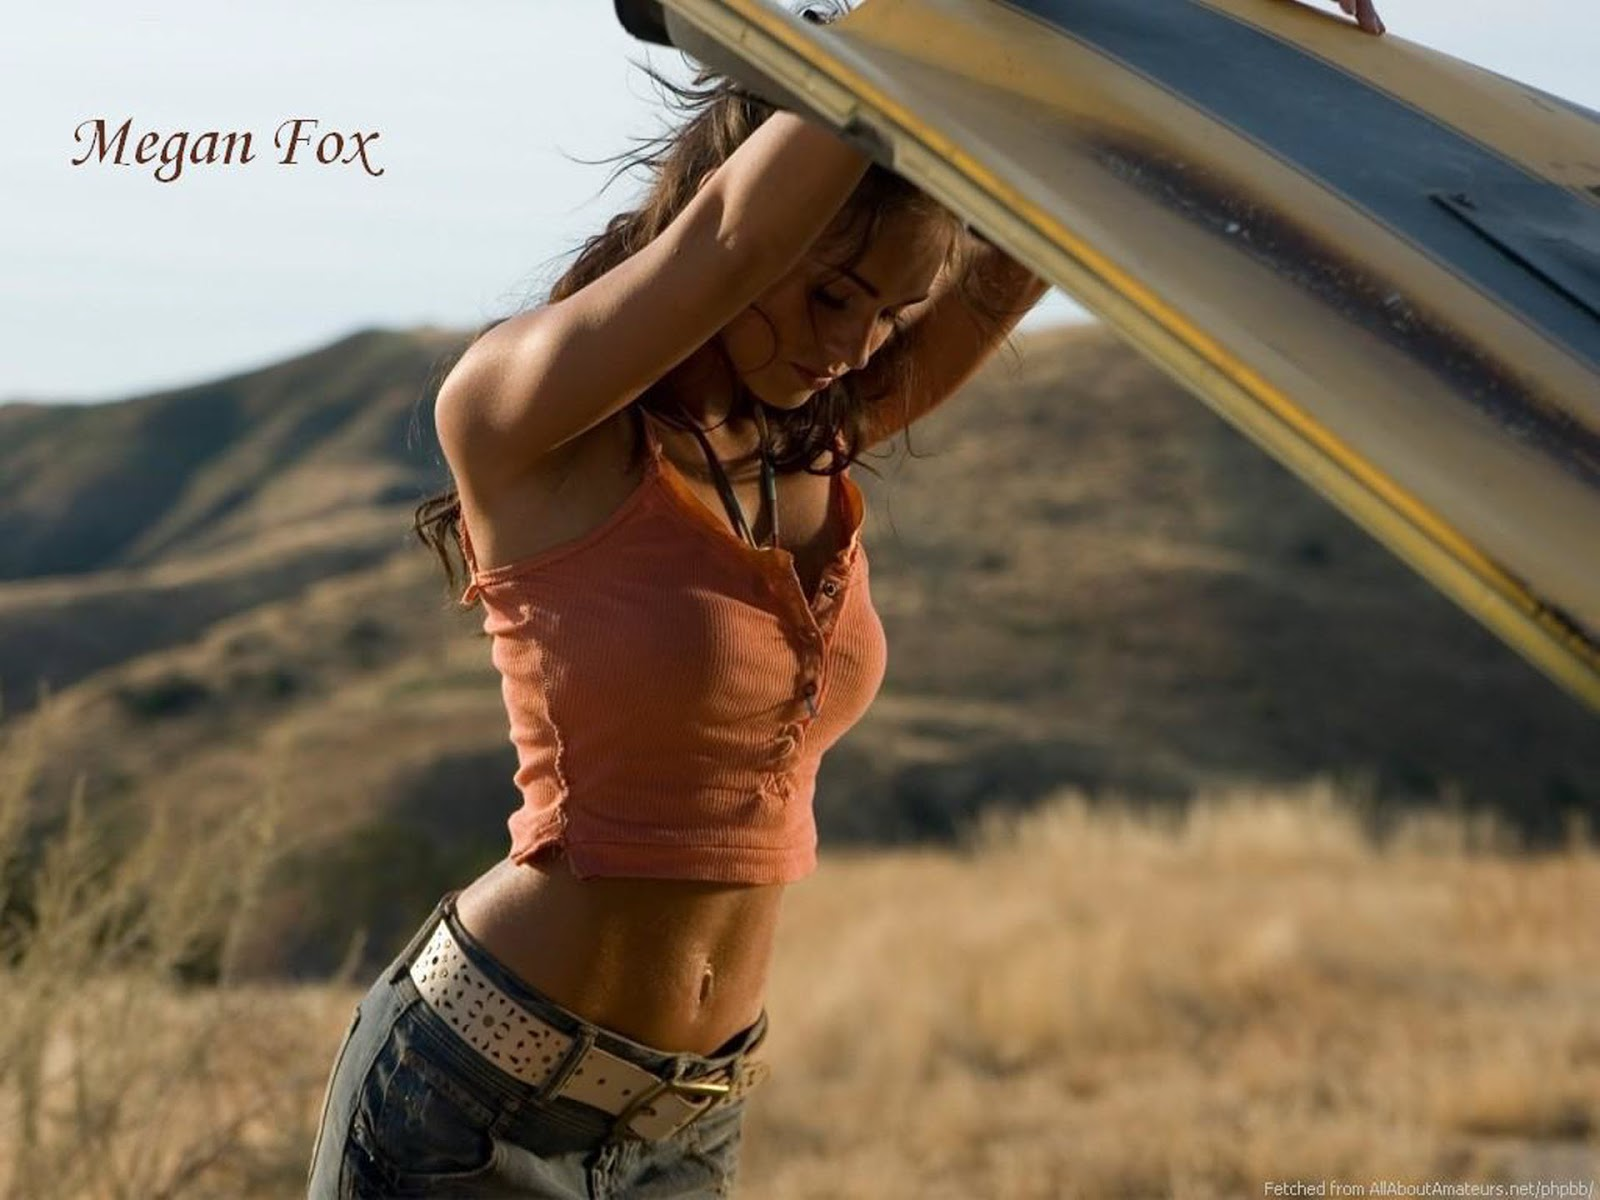 http://2.bp.blogspot.com/-as4XUMhhaBo/UNV_24nSXfI/AAAAAAAApm8/2BtDDNX2xTY/s1600/Megan+Fox+-+Hot+HD+Wallpapers+0007.jpg